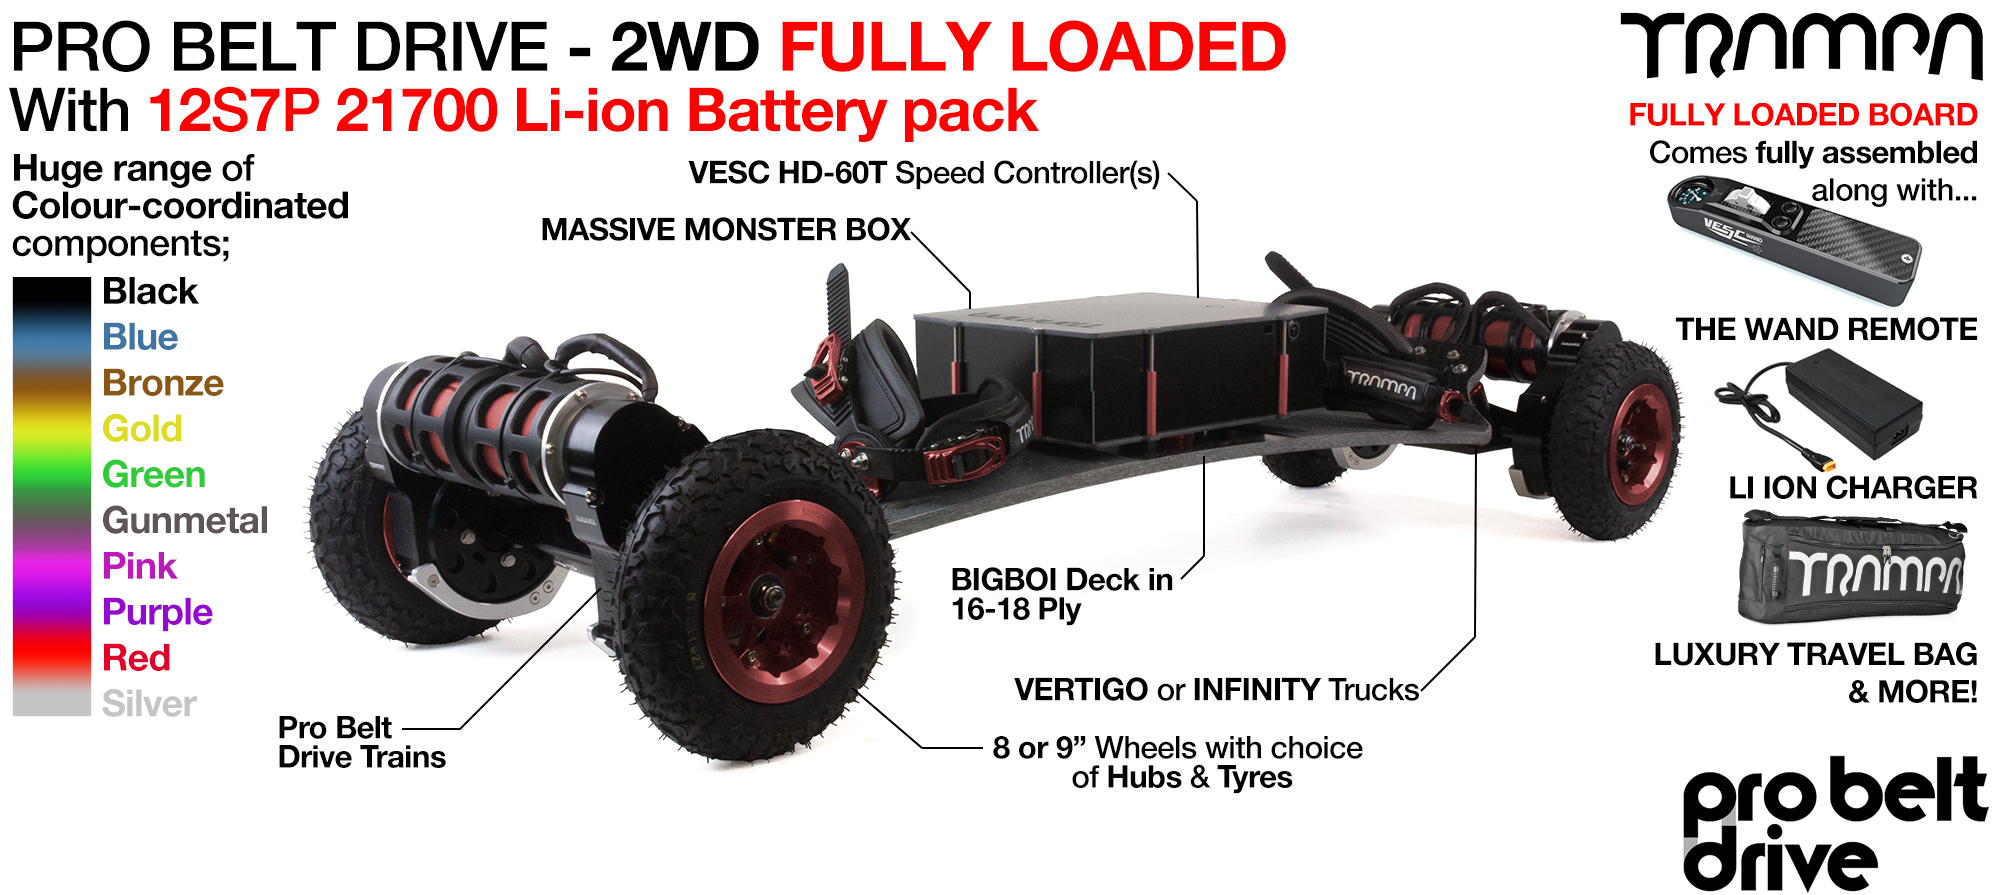 4WD PRO BELT DRIVE BIGBOI & Battery pack TRAMPA Electric Mountainboard - FULLY LOADED